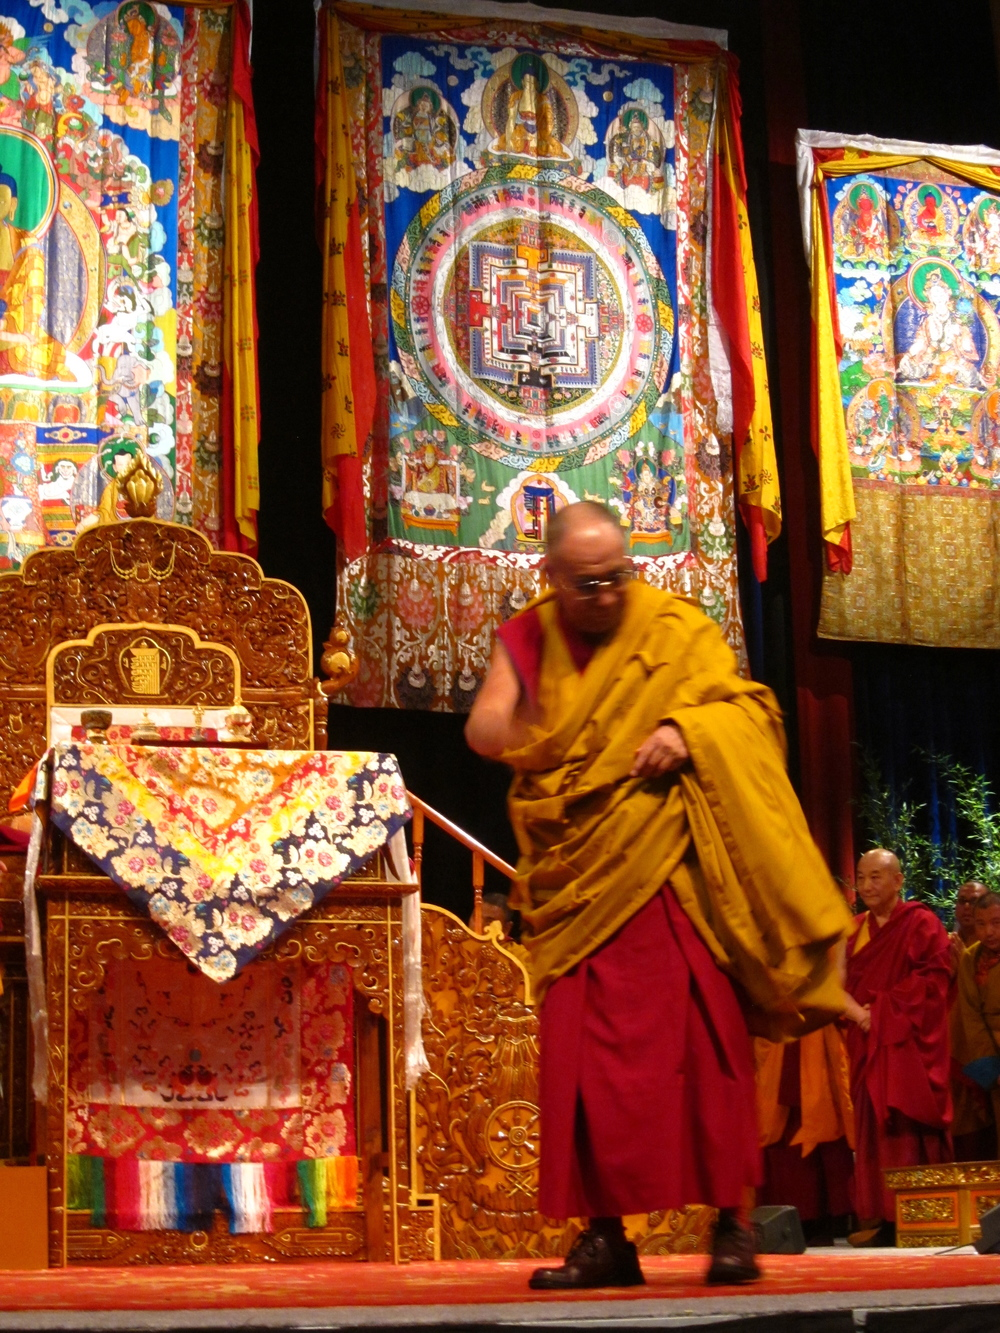 Kalachakra in Washington D.C.